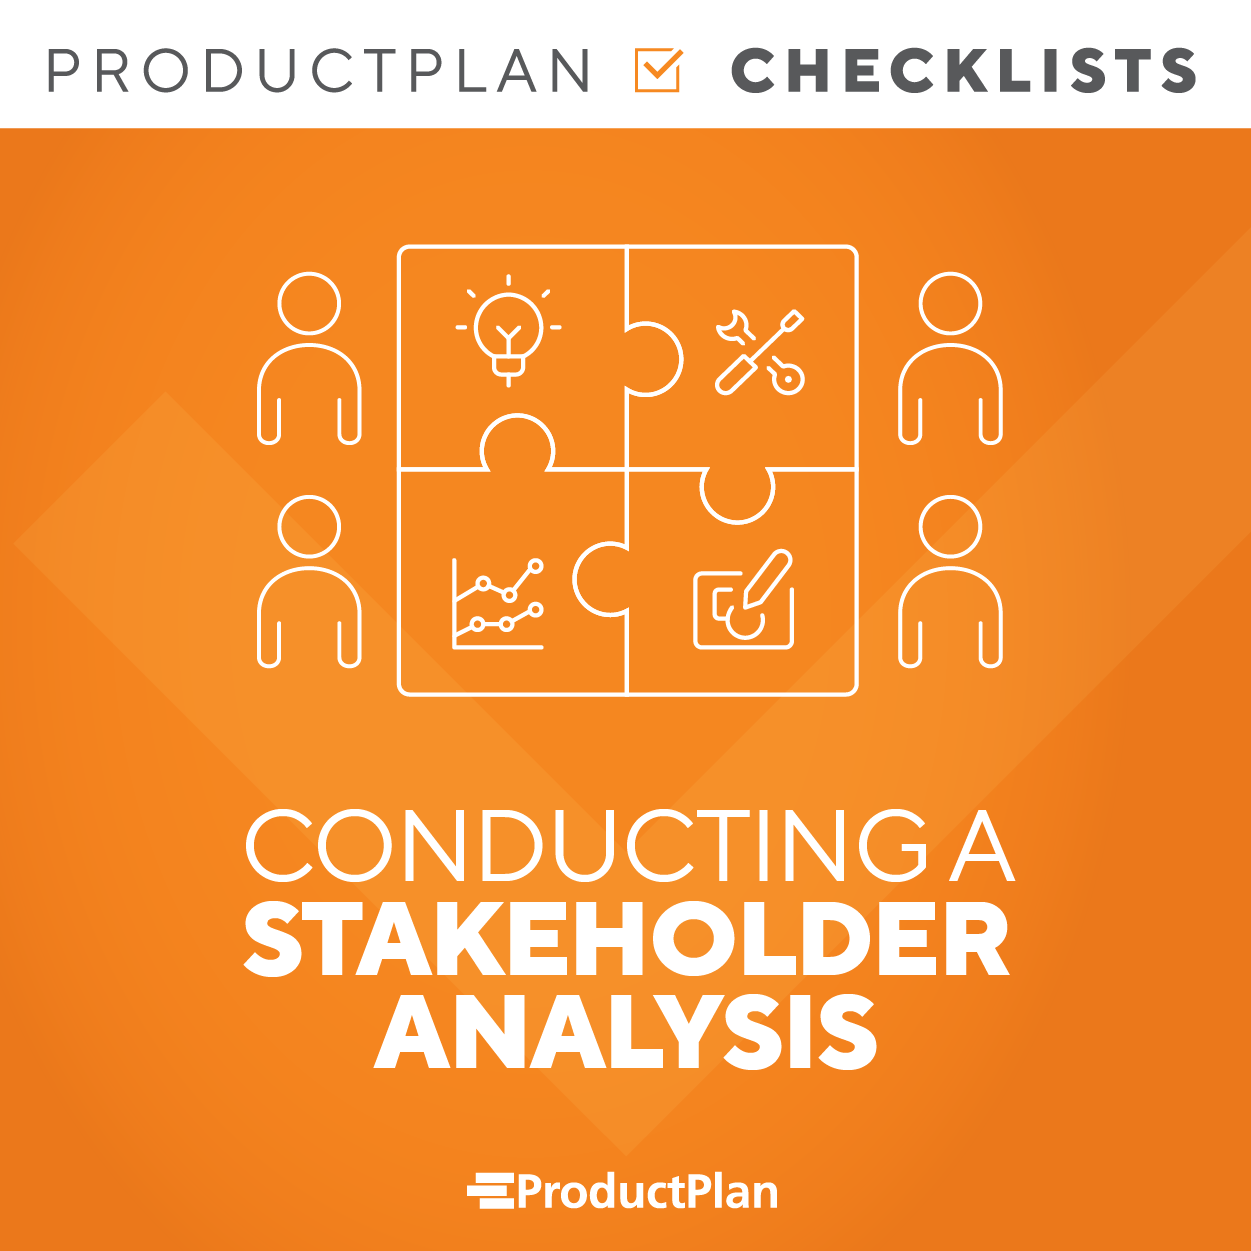 Stakeholder Checklist Cover